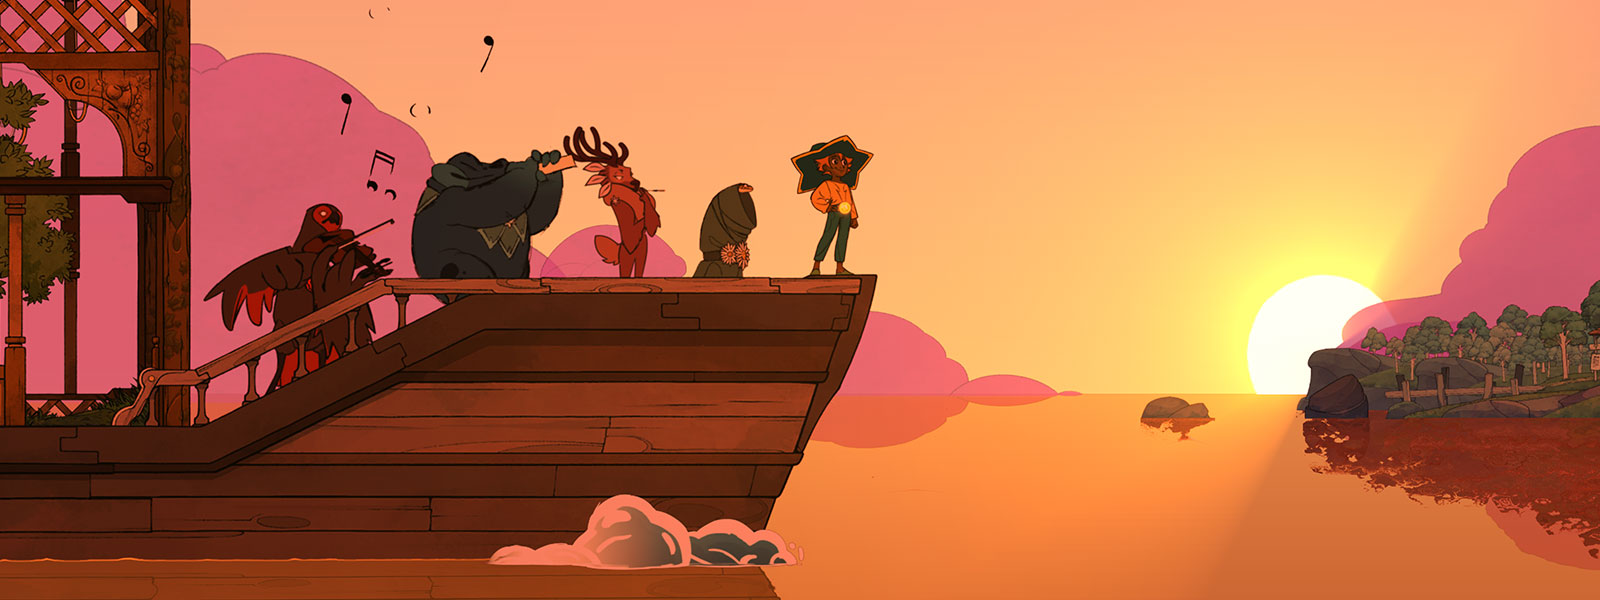 Five characters lines up on the end of a boat during a sunset with two of the characters playing music